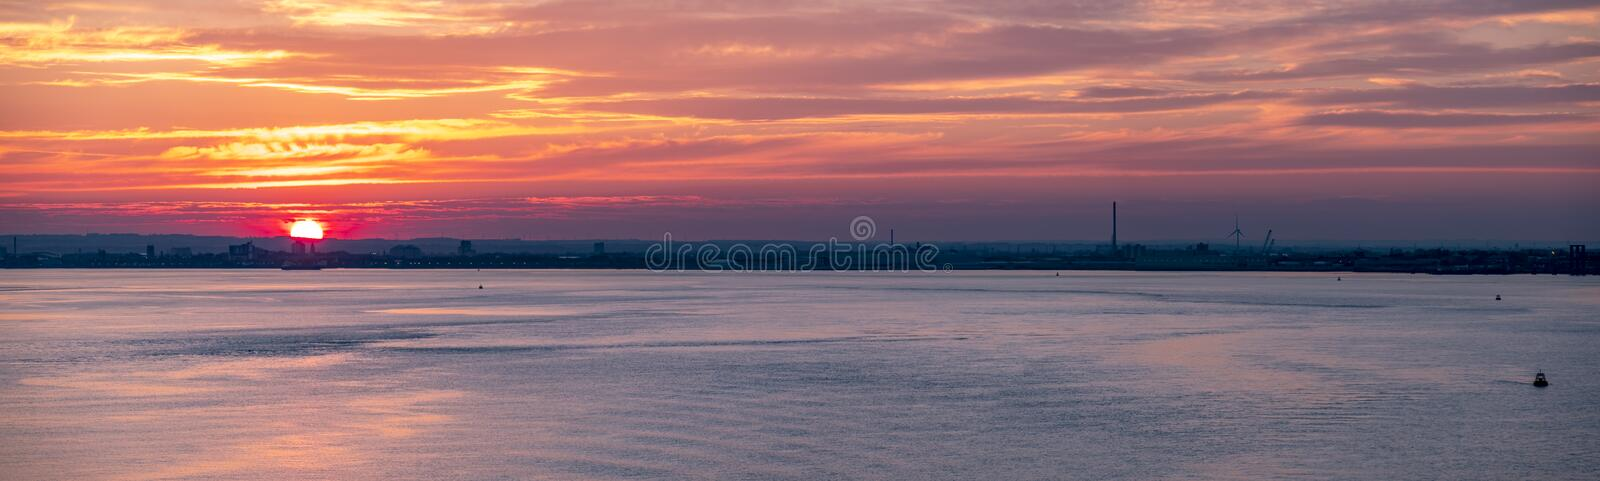 Hull harbor at sunset, England - United Kingdom.  stock photo